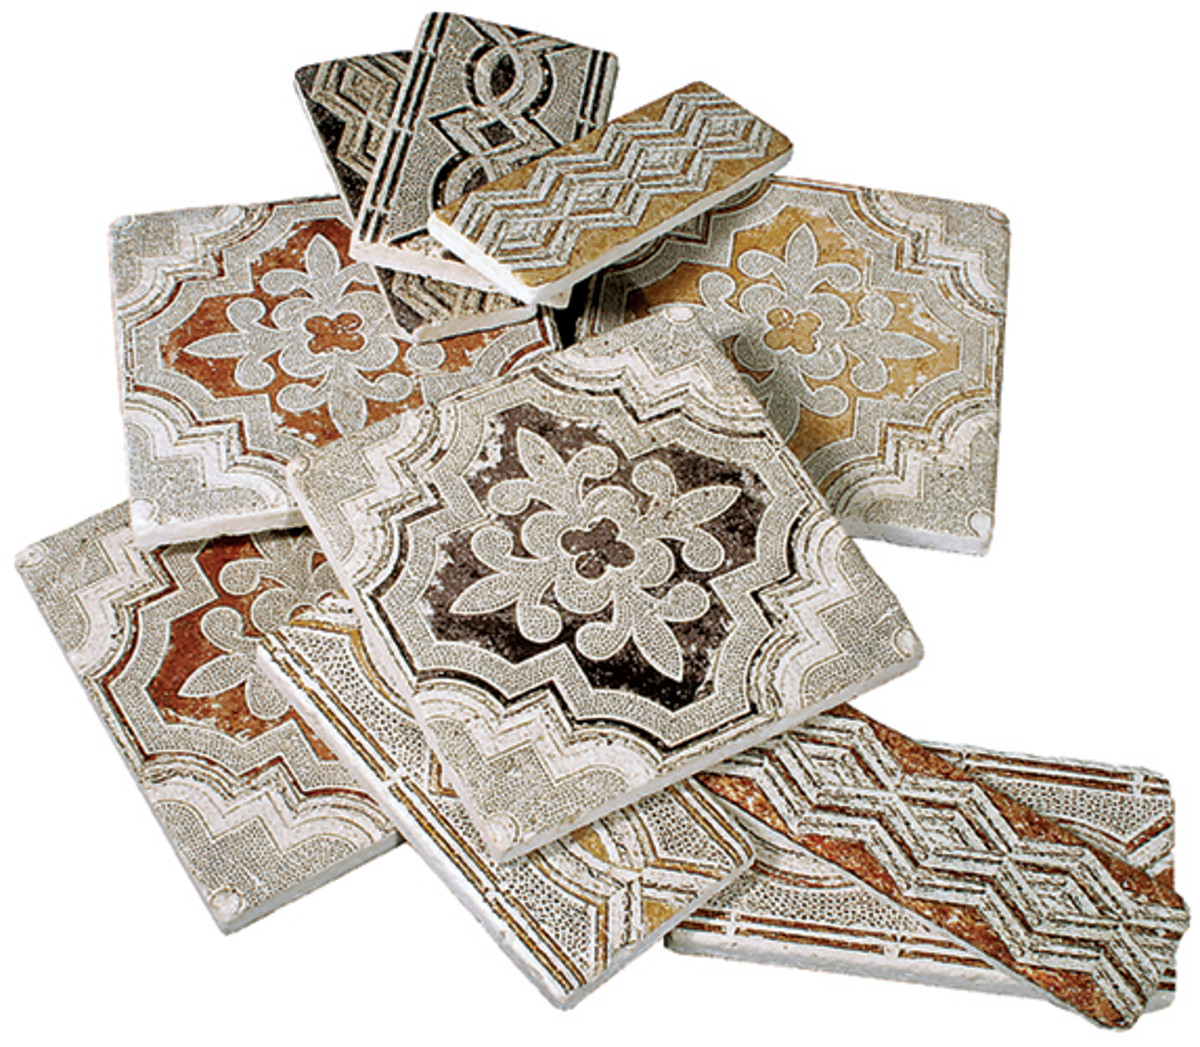 """These stone tiles in the """"Altalena' collection by Stone Impressions mimic the ancient appearance of Roman and Moorish tiles found in Spain."""